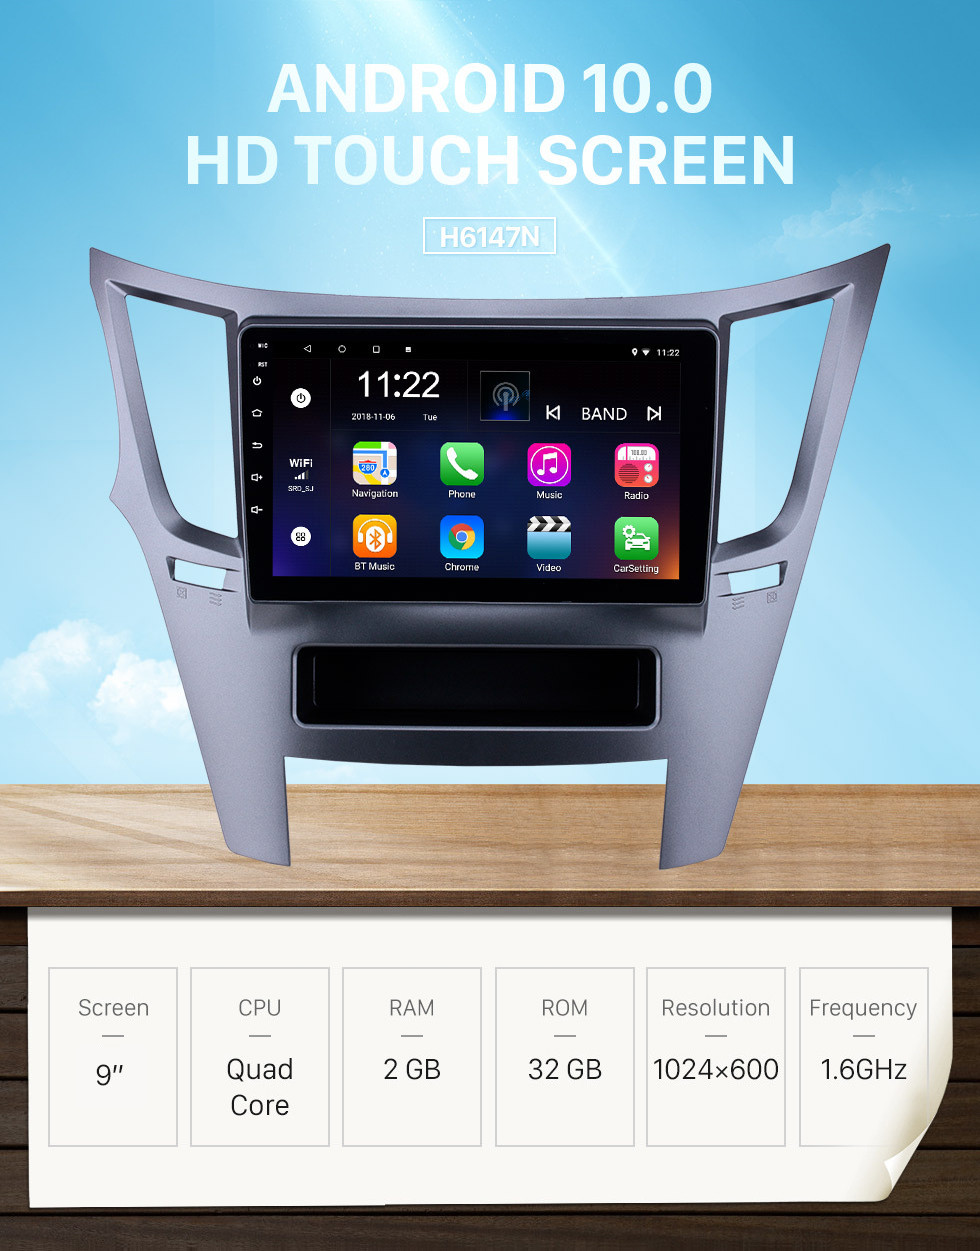 Seicane 9 inch Touchscreen Android 10.0 2010-2016 Subaru Outback LHD GPS Navigation Radio with USB WIFI Bluetooth support TPMS DVR SWC Carplay Digital TV